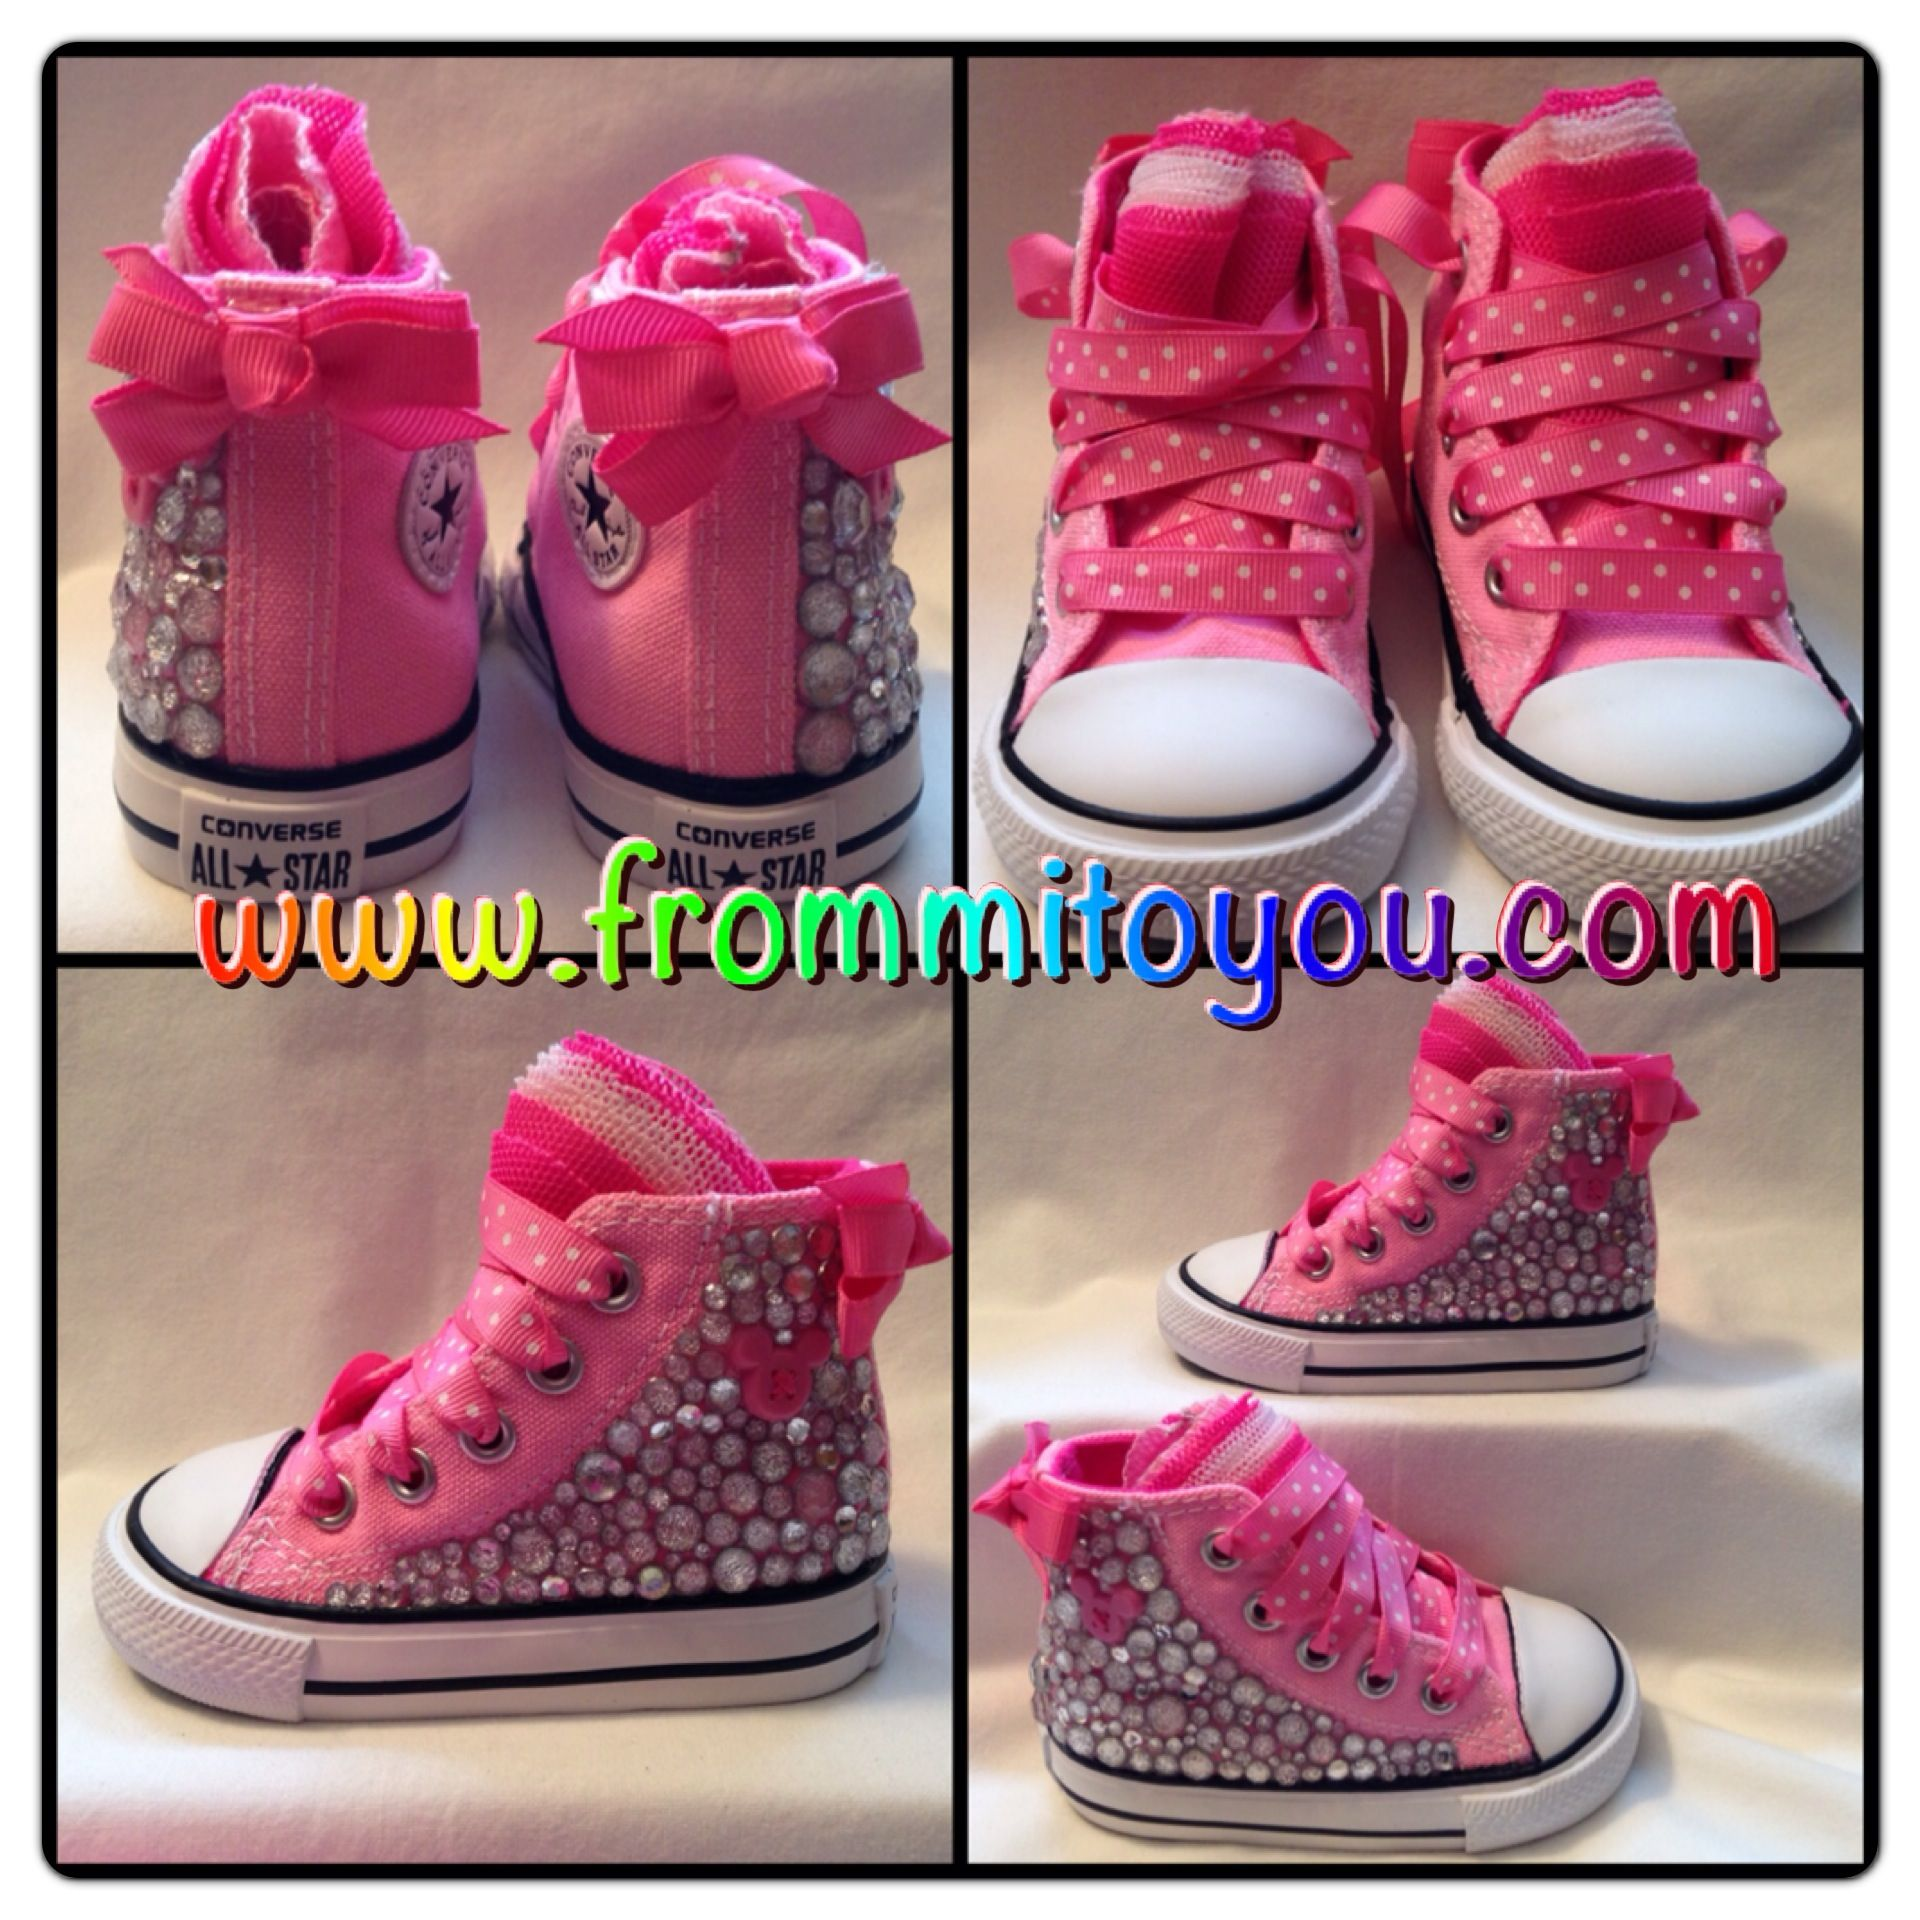 2cc13cce98c52 Embellished Canvas Shoes #shoes #converse #chucktaylor #bling #kids ...